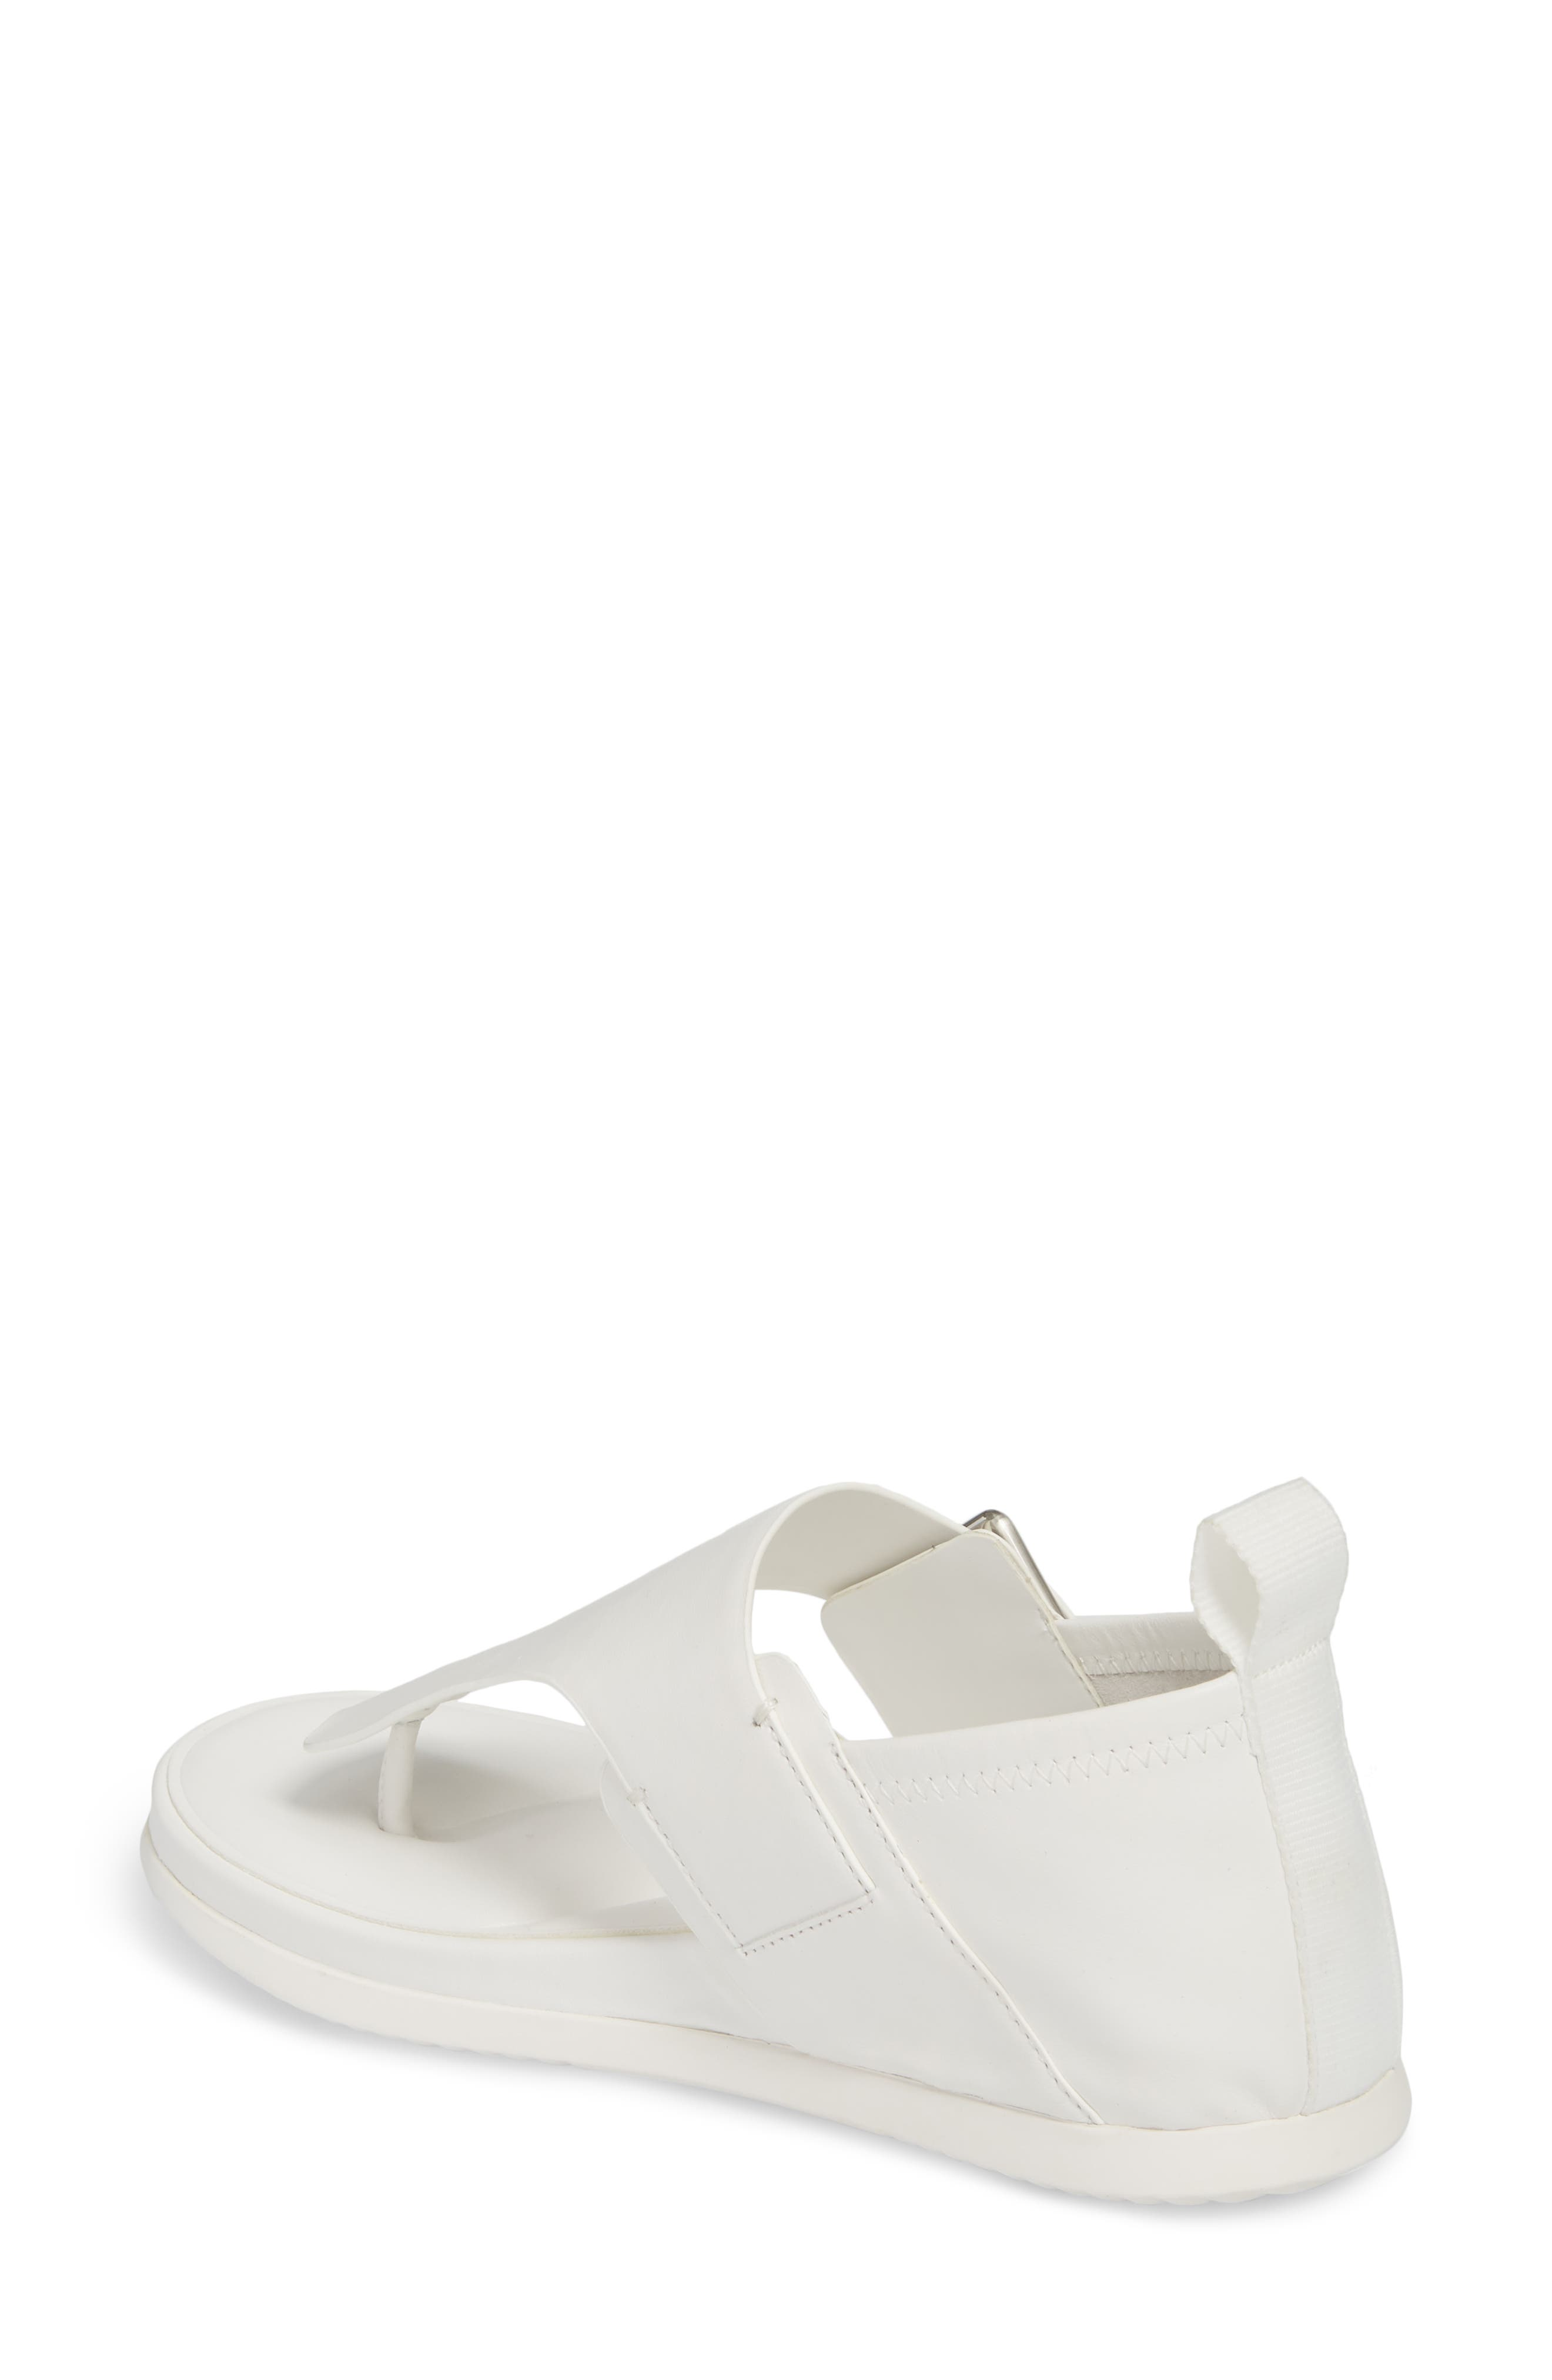 Dionay Wedge Sandal,                             Alternate thumbnail 5, color,